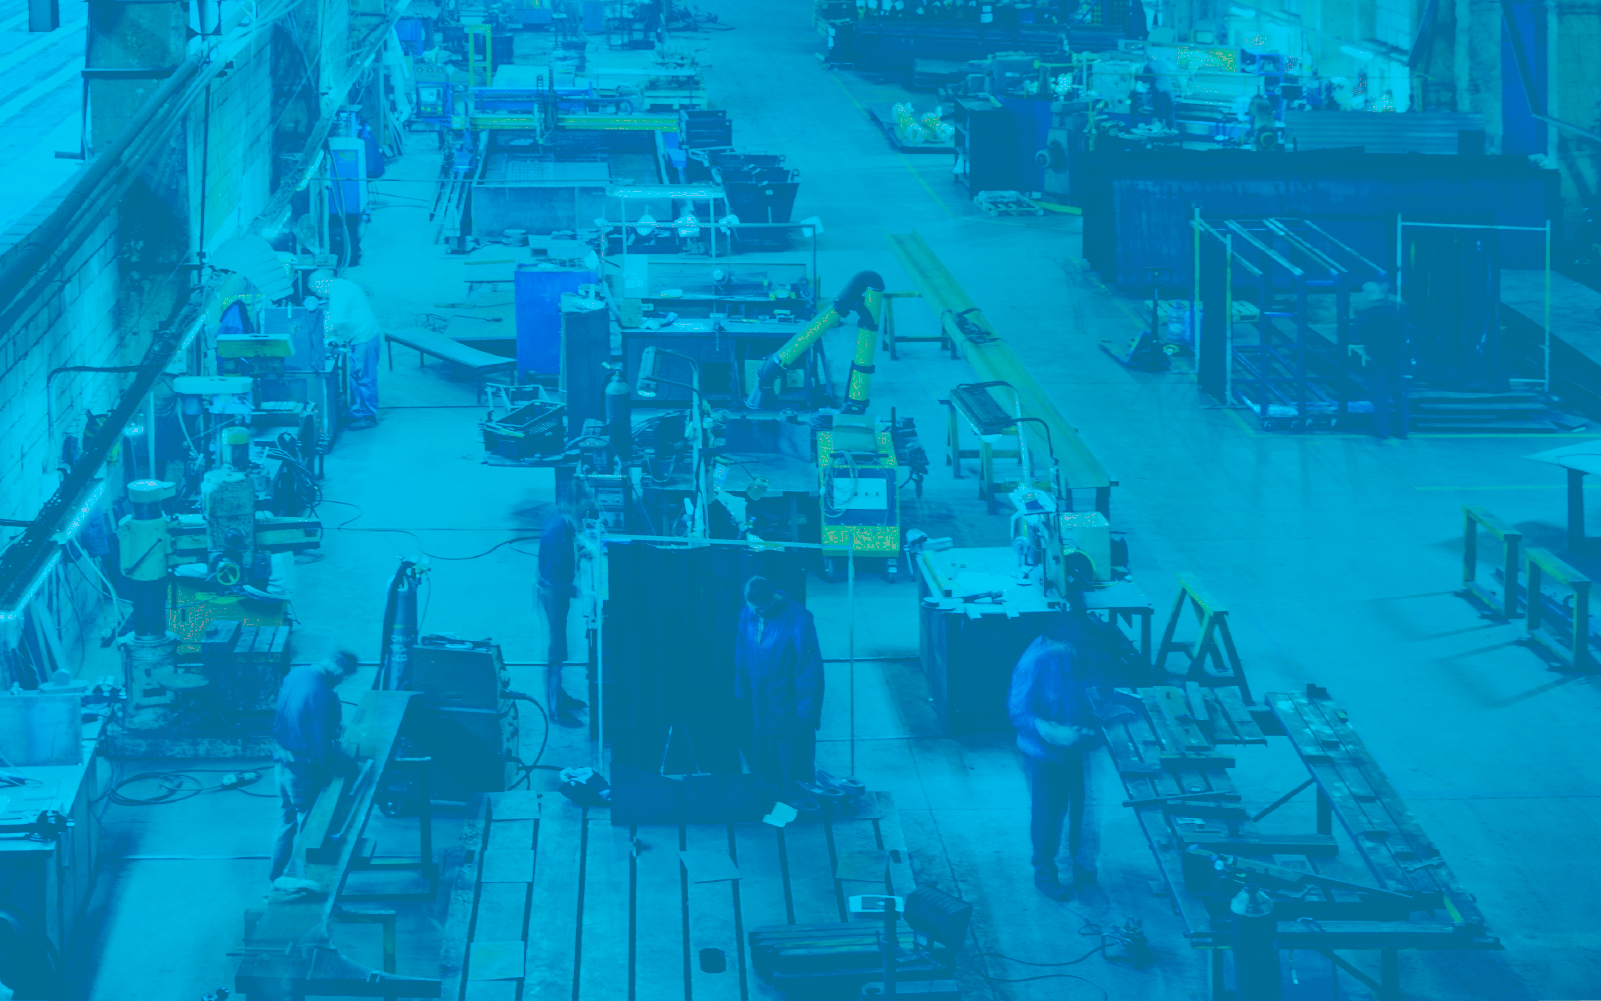 Image of people in a manufacturing warehouse with a blue overlay